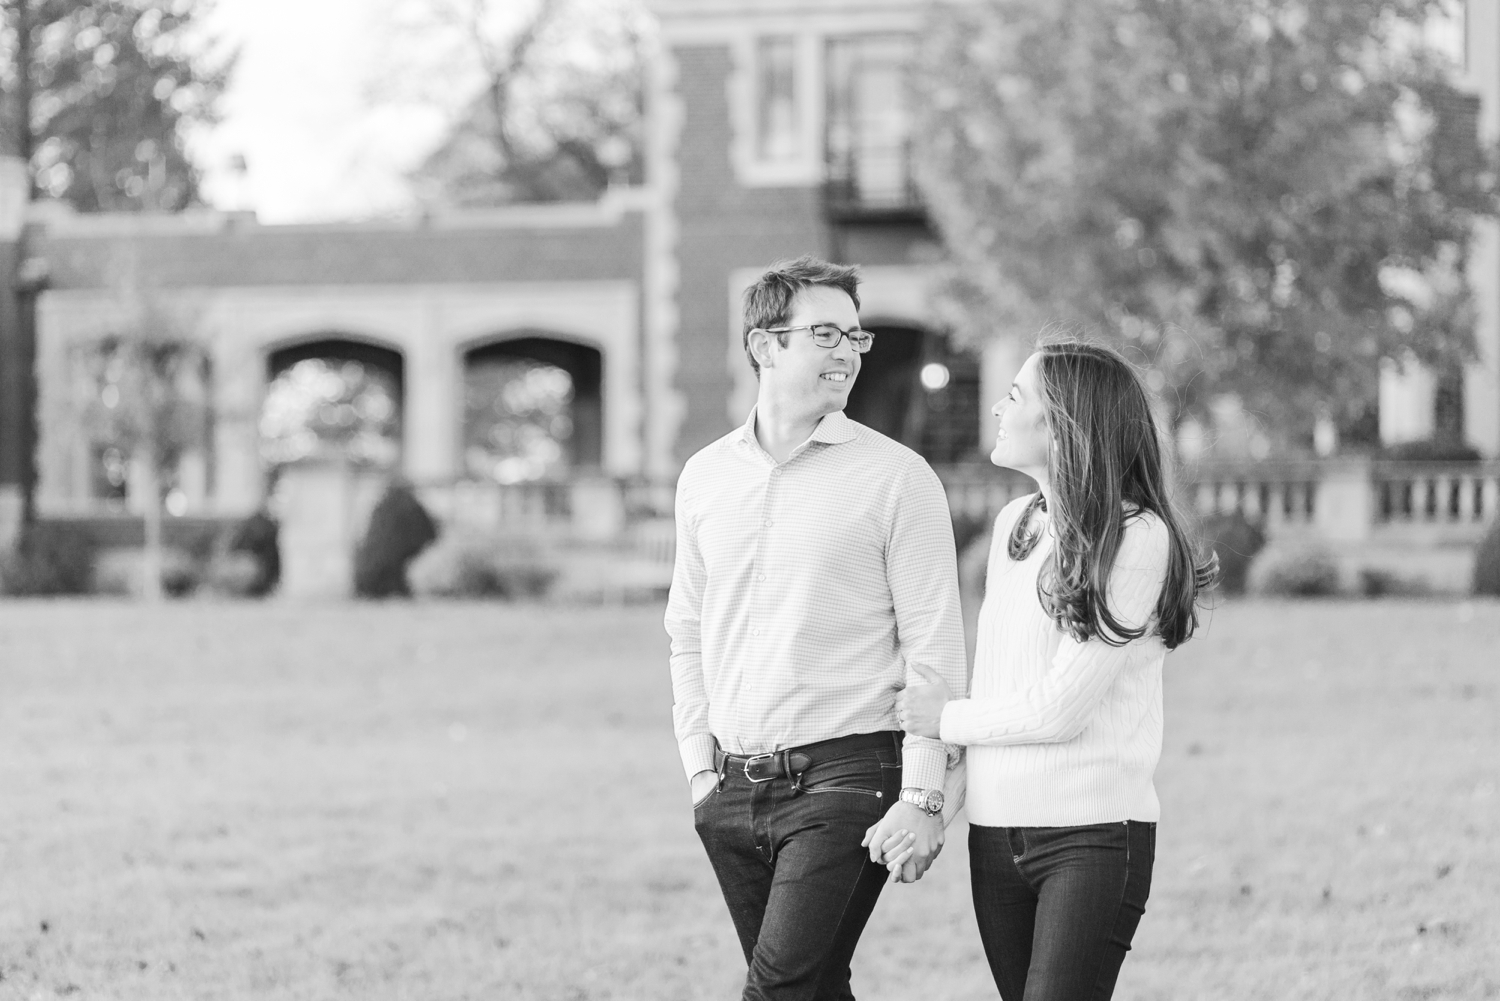 waveny-park-engagement-session-new-canaan-connecticut-wedding-photographer-ss-shaina-lee-photography-photo